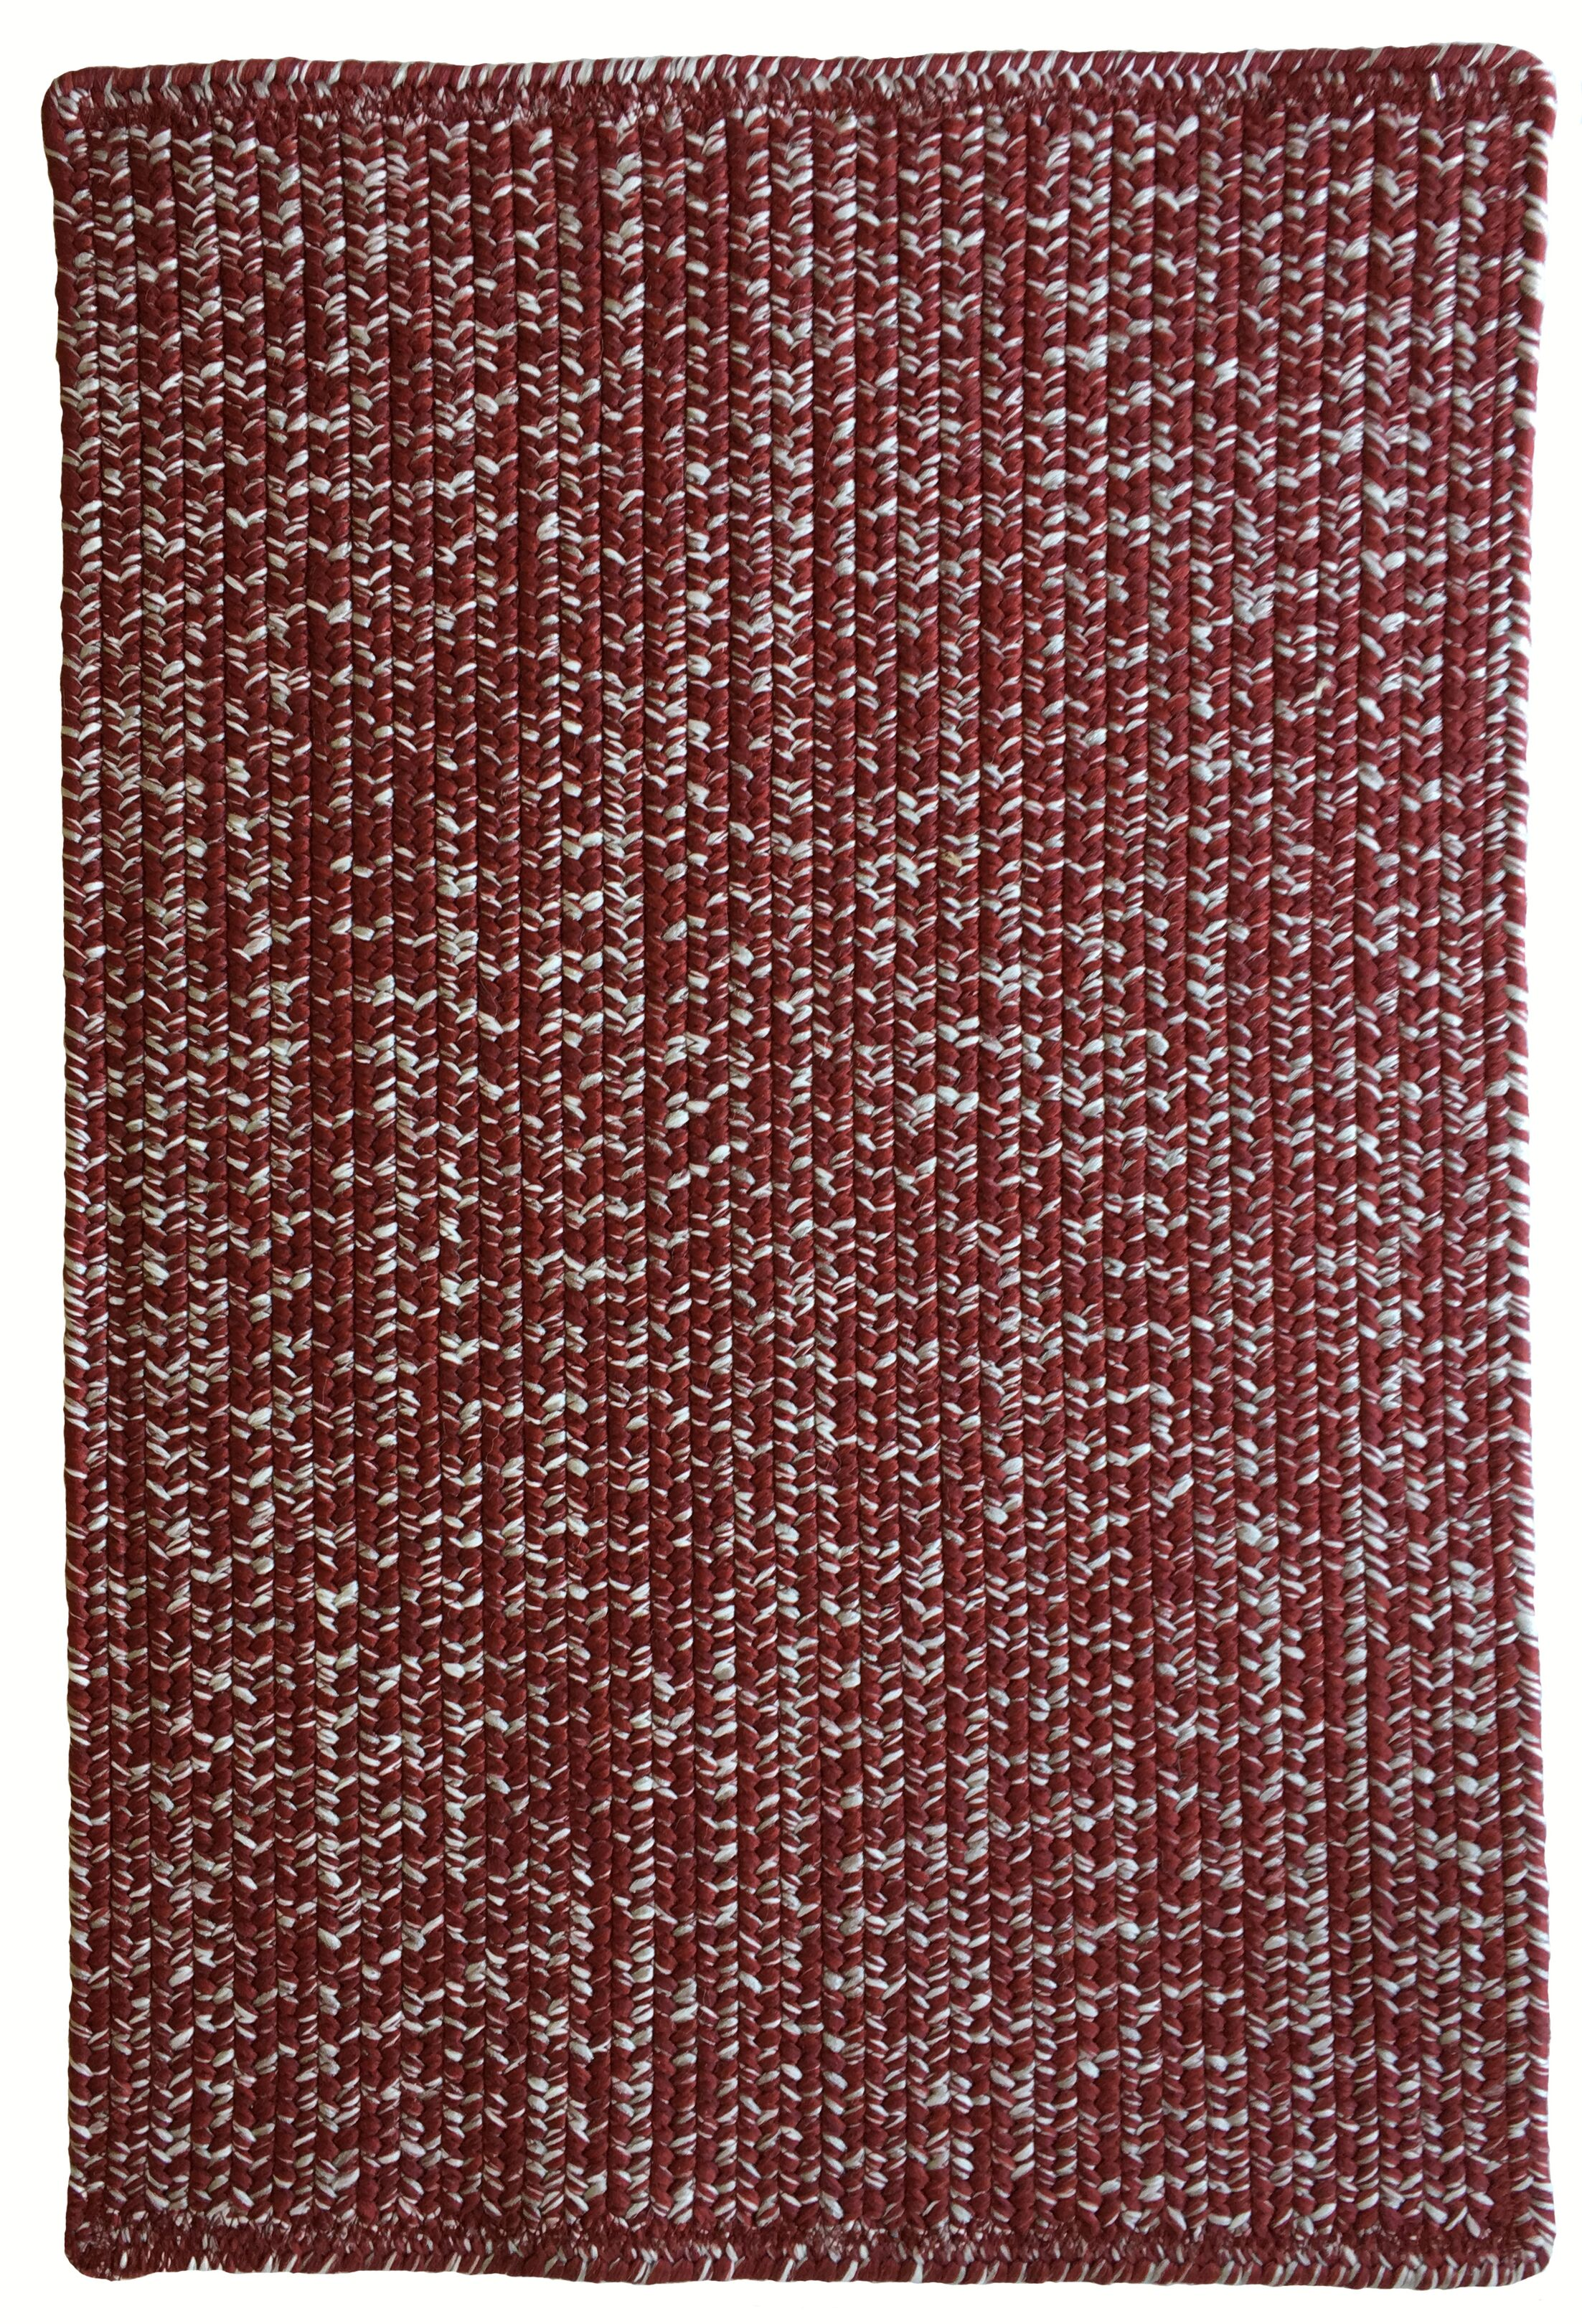 One-of-a-Kind Aukerman Hand-Braided Red/Gray Indoor/Outdoor Area Rug Rug Size: Rectangle 9'2